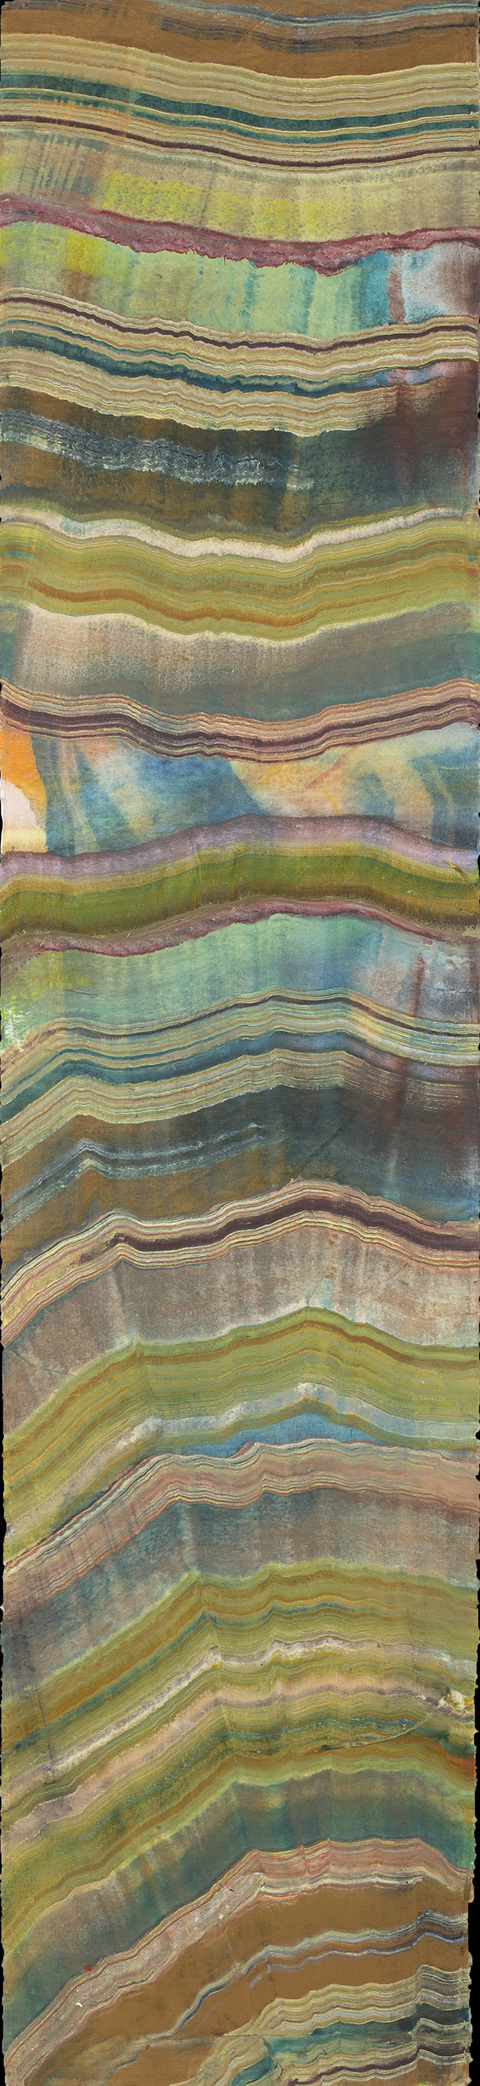 Laura Moriarty On Paper Encaustic on Uda-Gami